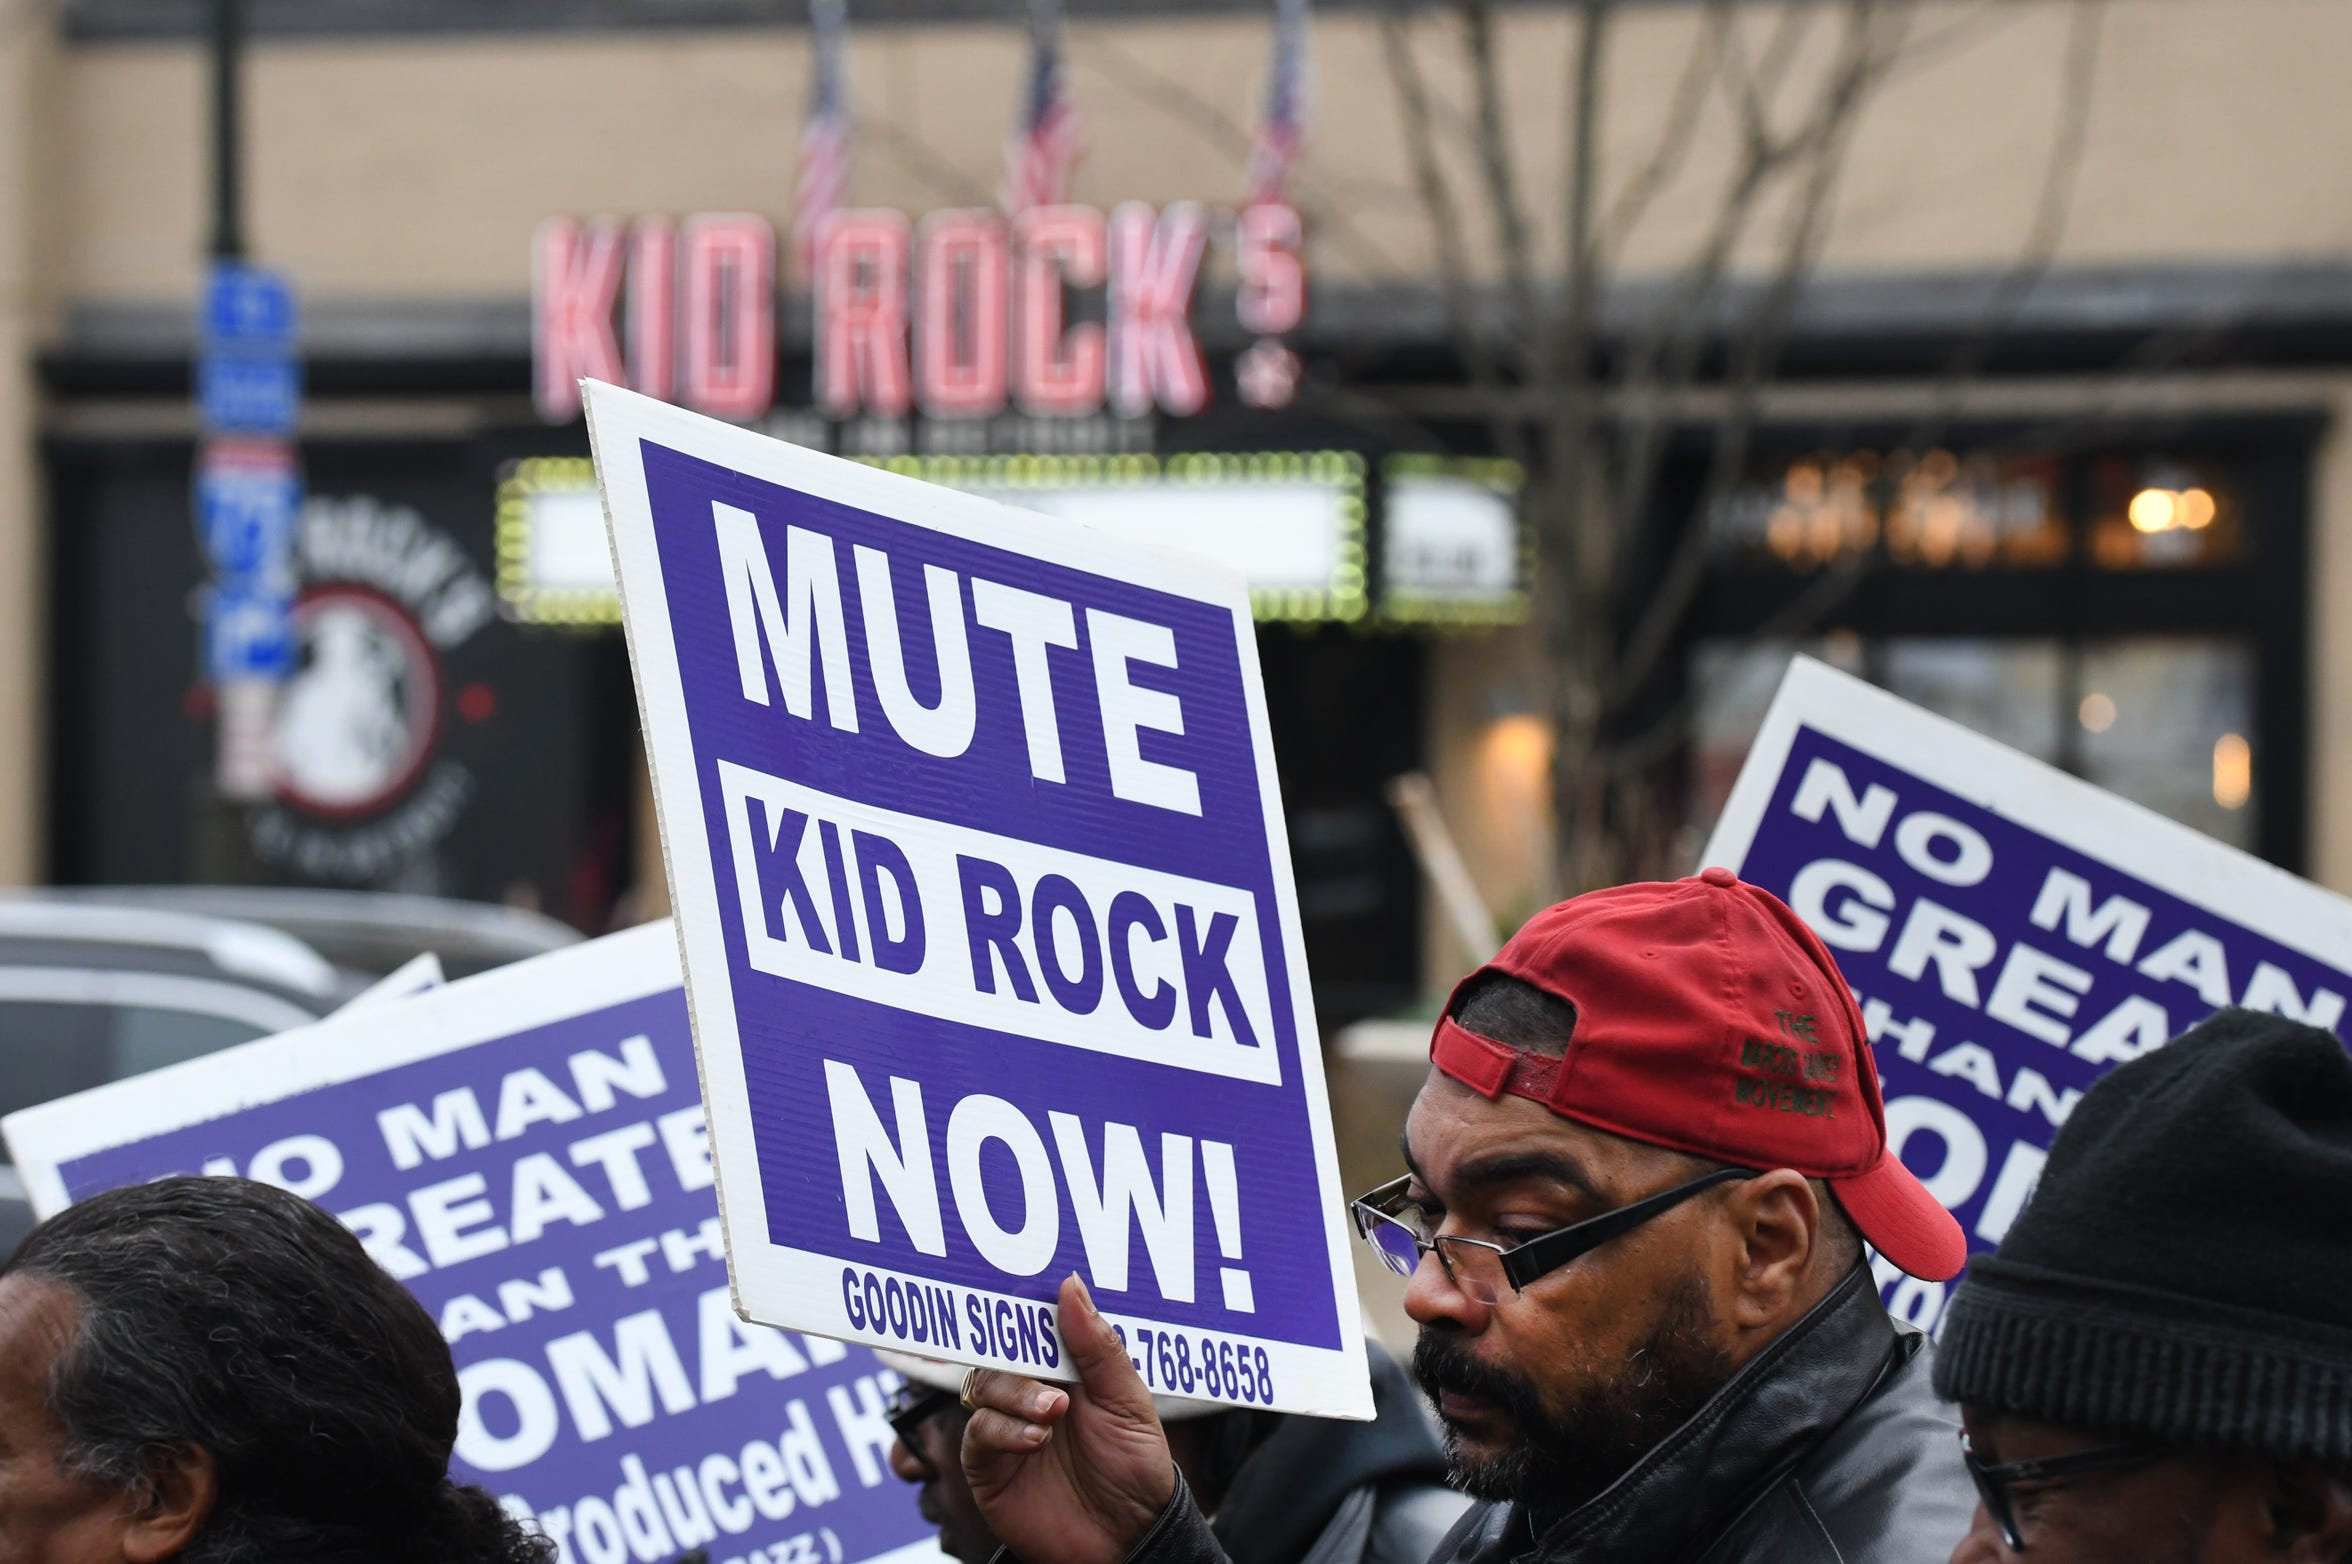 Detroit minister and activist Malik Shabazz protests Kid Rock's rant against Oprah Winfrey during a demonstration outside Kid Rock's Made in Detroit restaurant at Little Caesars Arena in December. The restaurant will not renew it's lease in 2020.